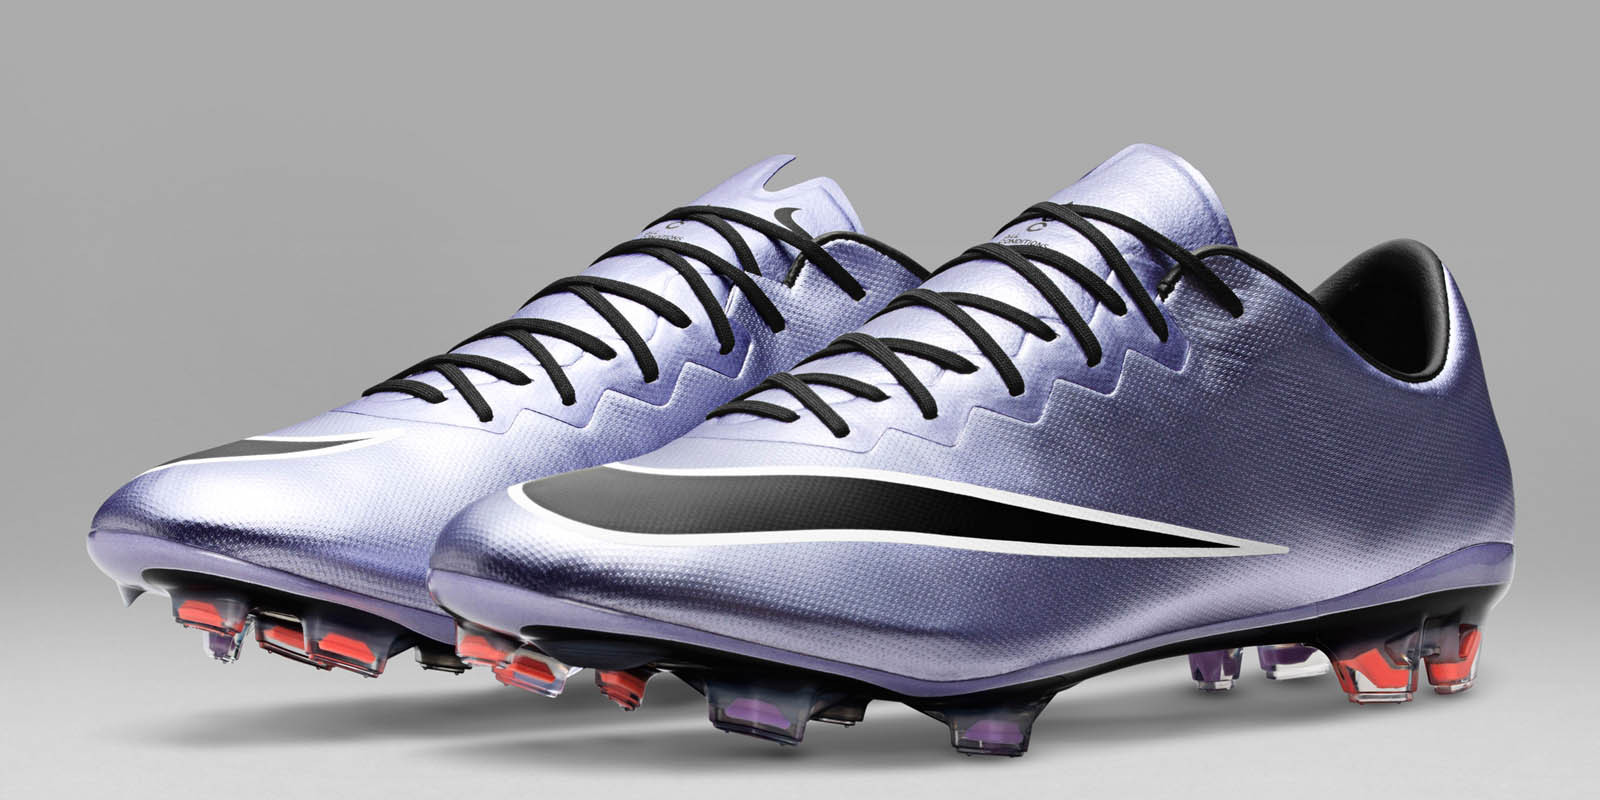 Urban Lilac, Black and Bright Mango. The new silver Nike Mercurial Vapor 10  Soccer Cleats introduce a stunning design for the Nike Mercurial, ...